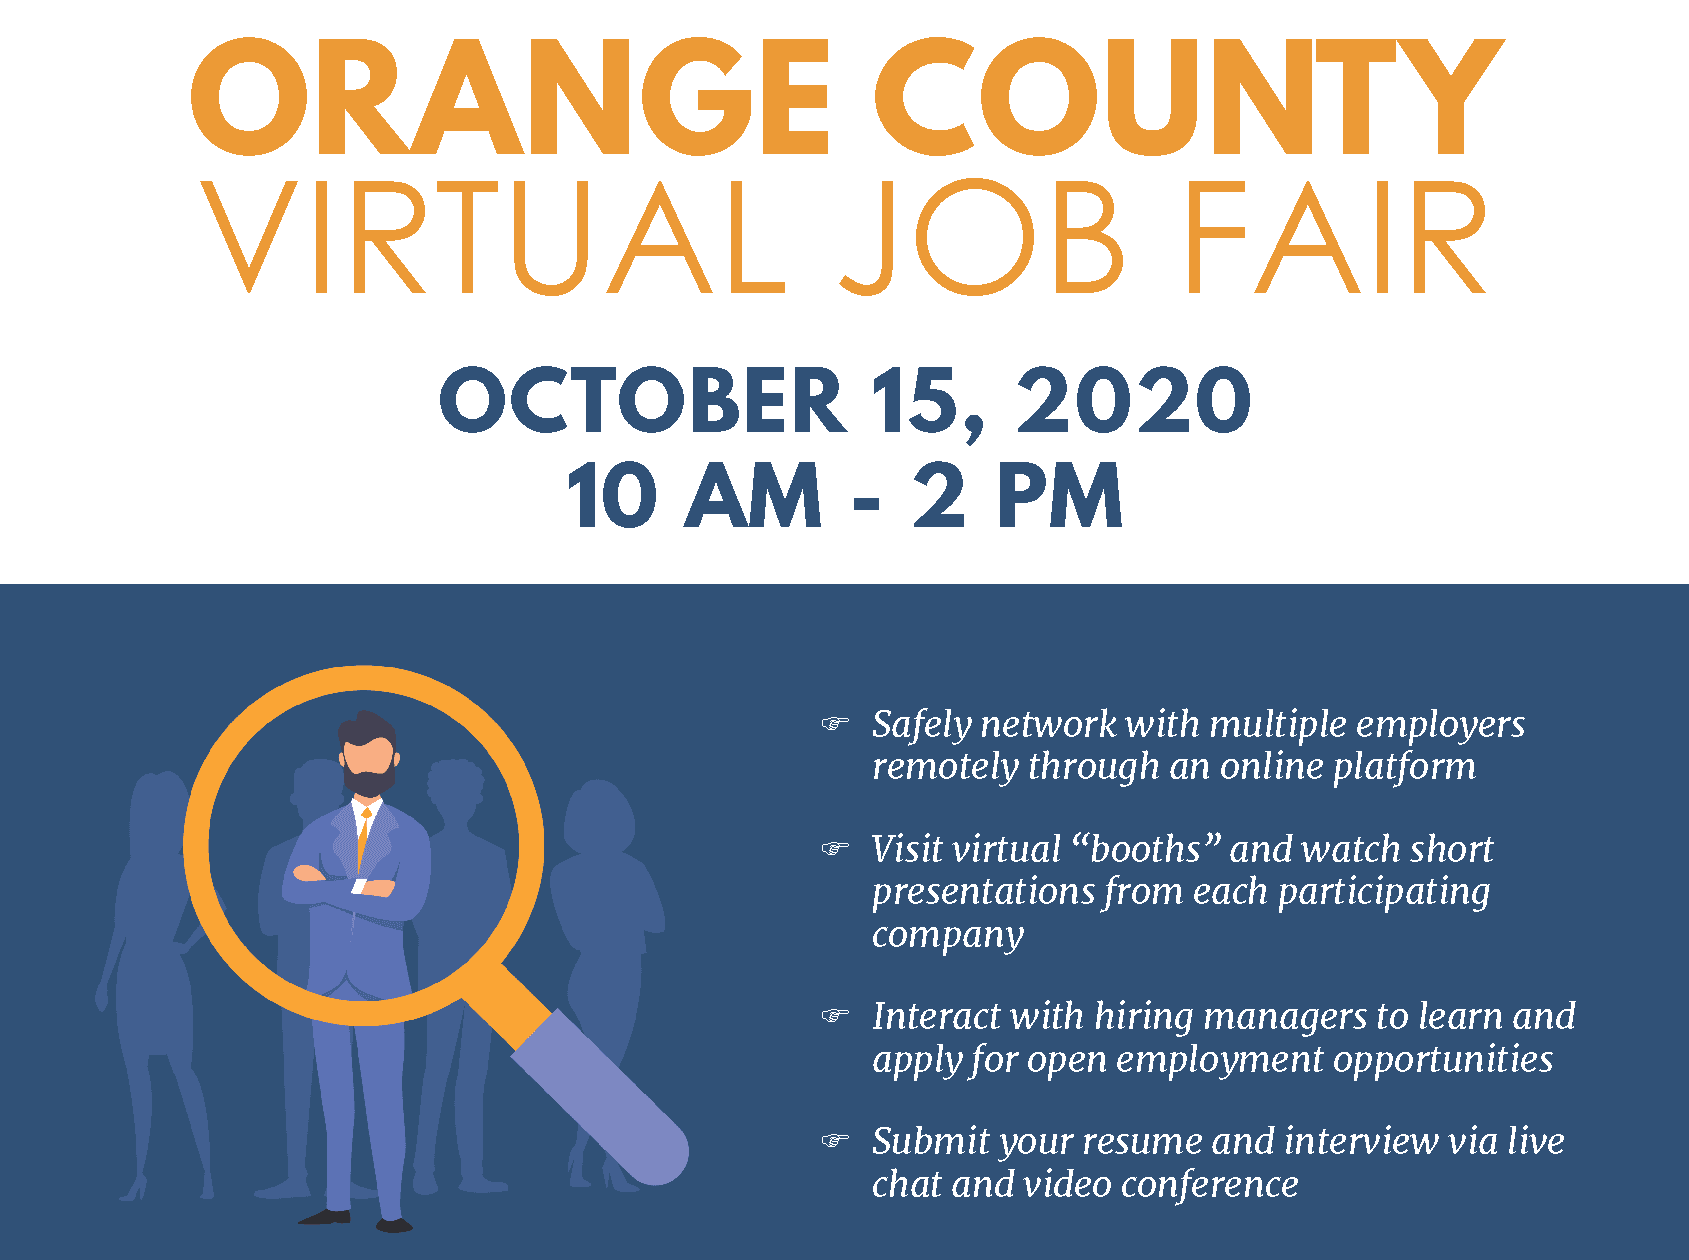 OC Job Fair 10-20 Job Seekers (2)